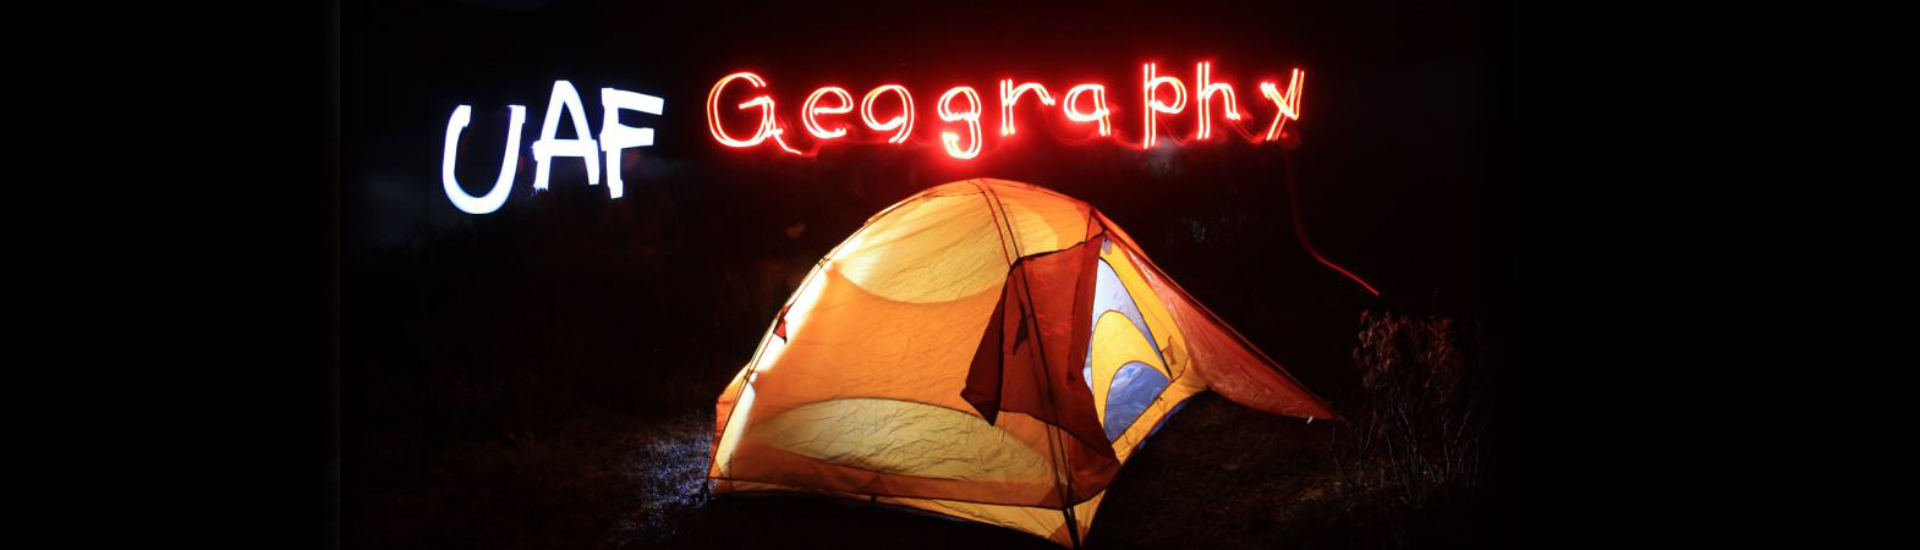 geography tent